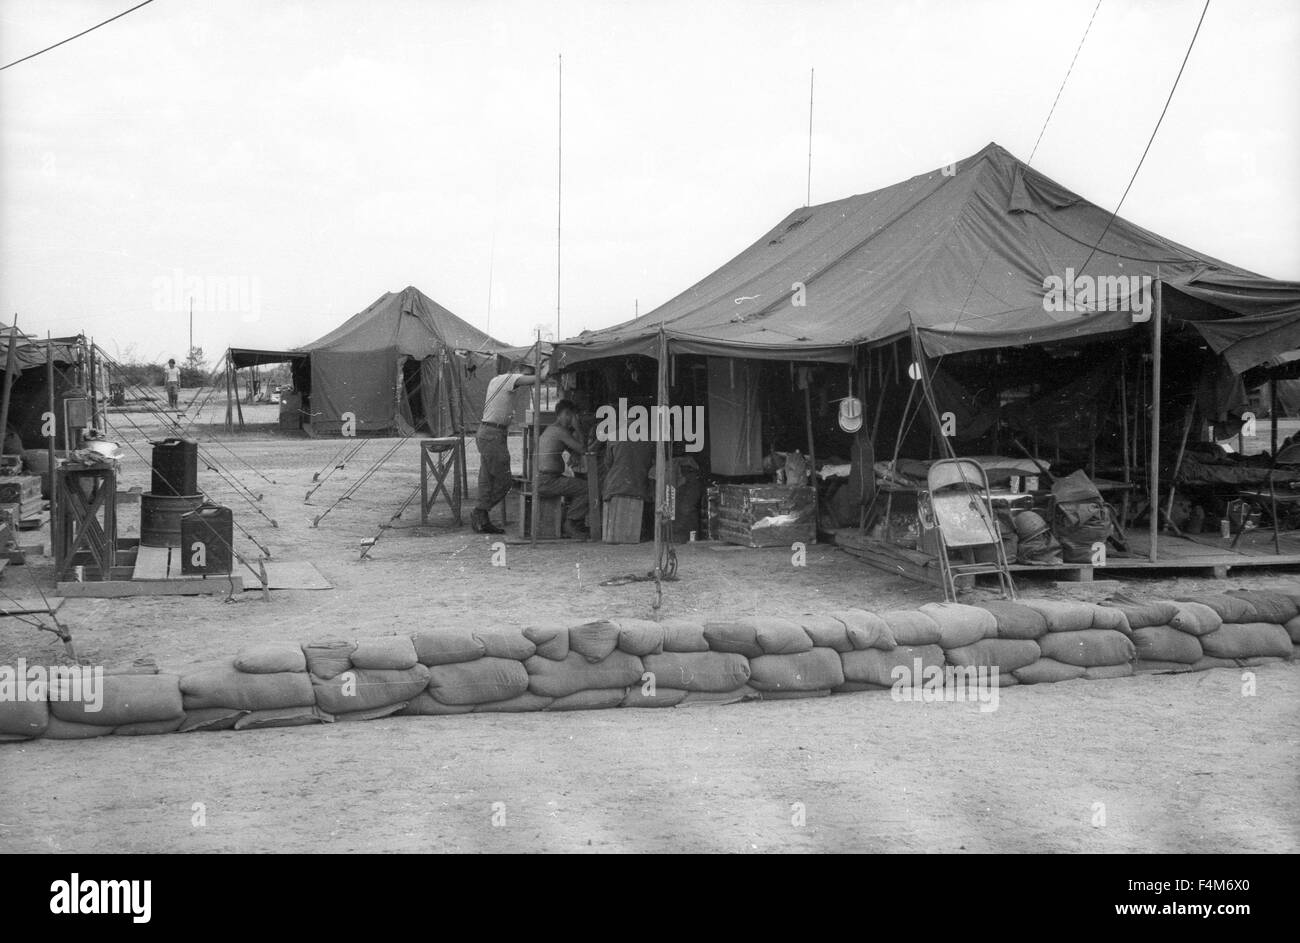 sandbags at tent at a first infantry division base camp in 1965